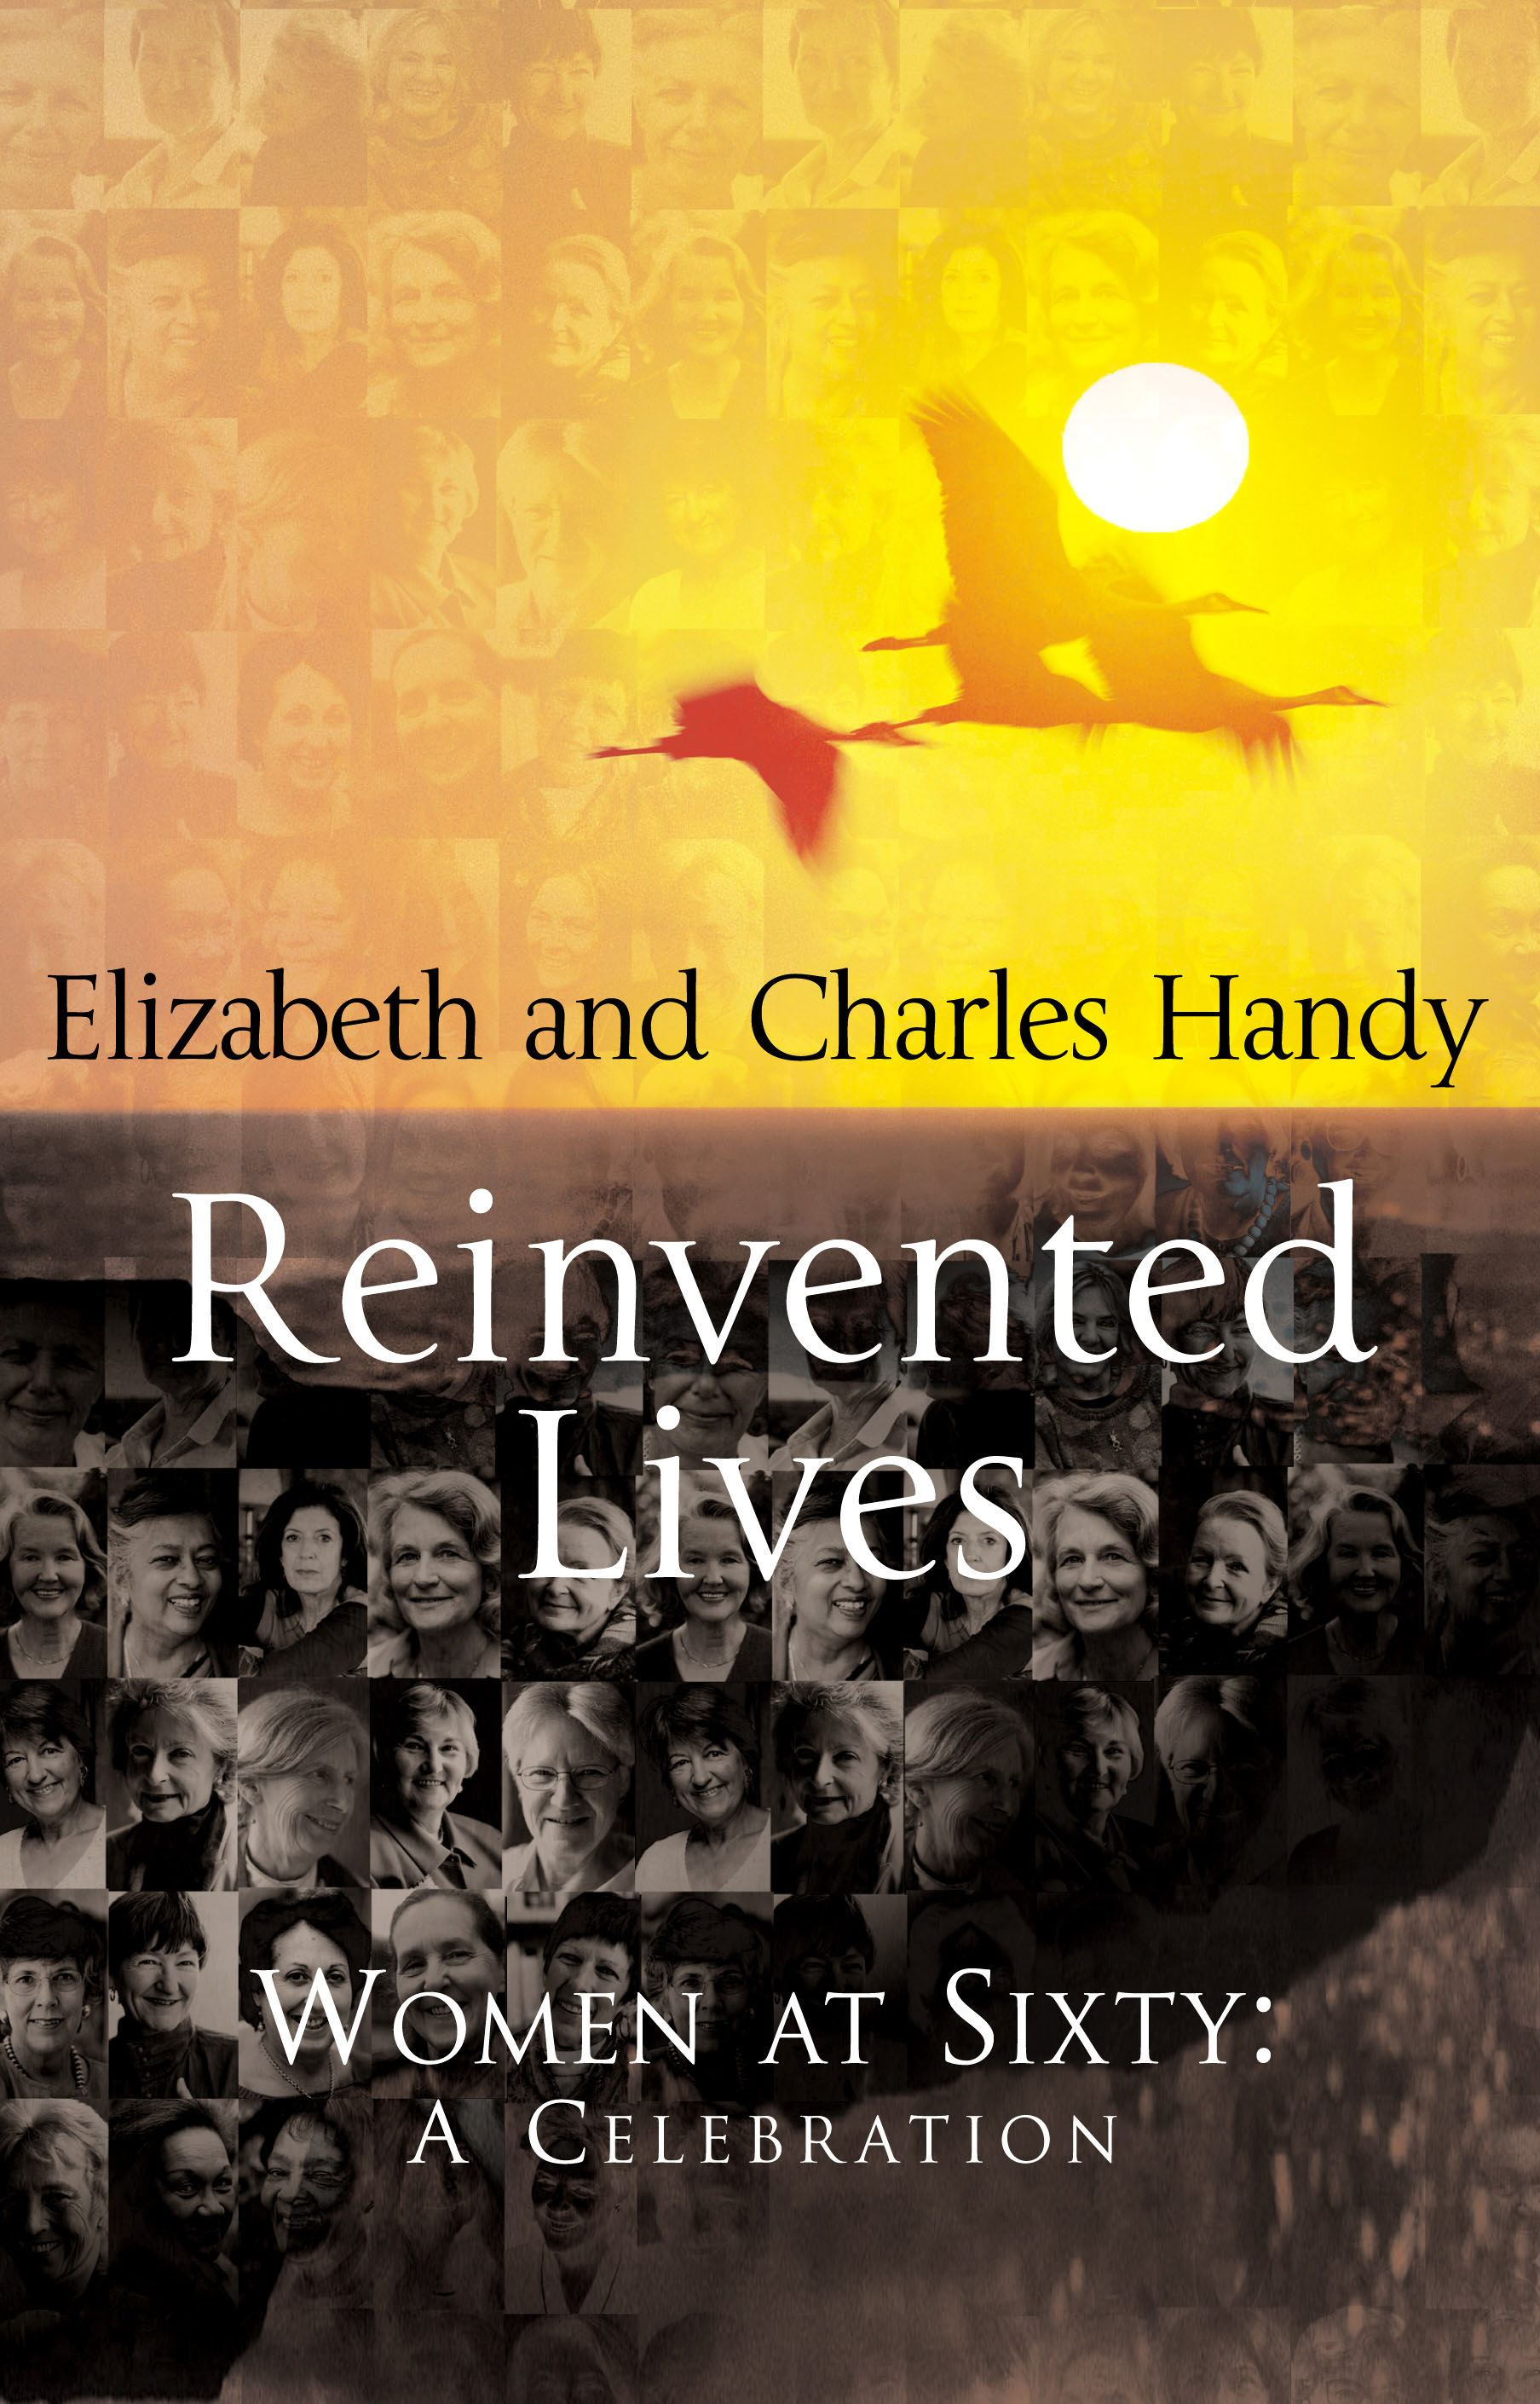 Reinvented Lives Women at Sixty: A Celebration